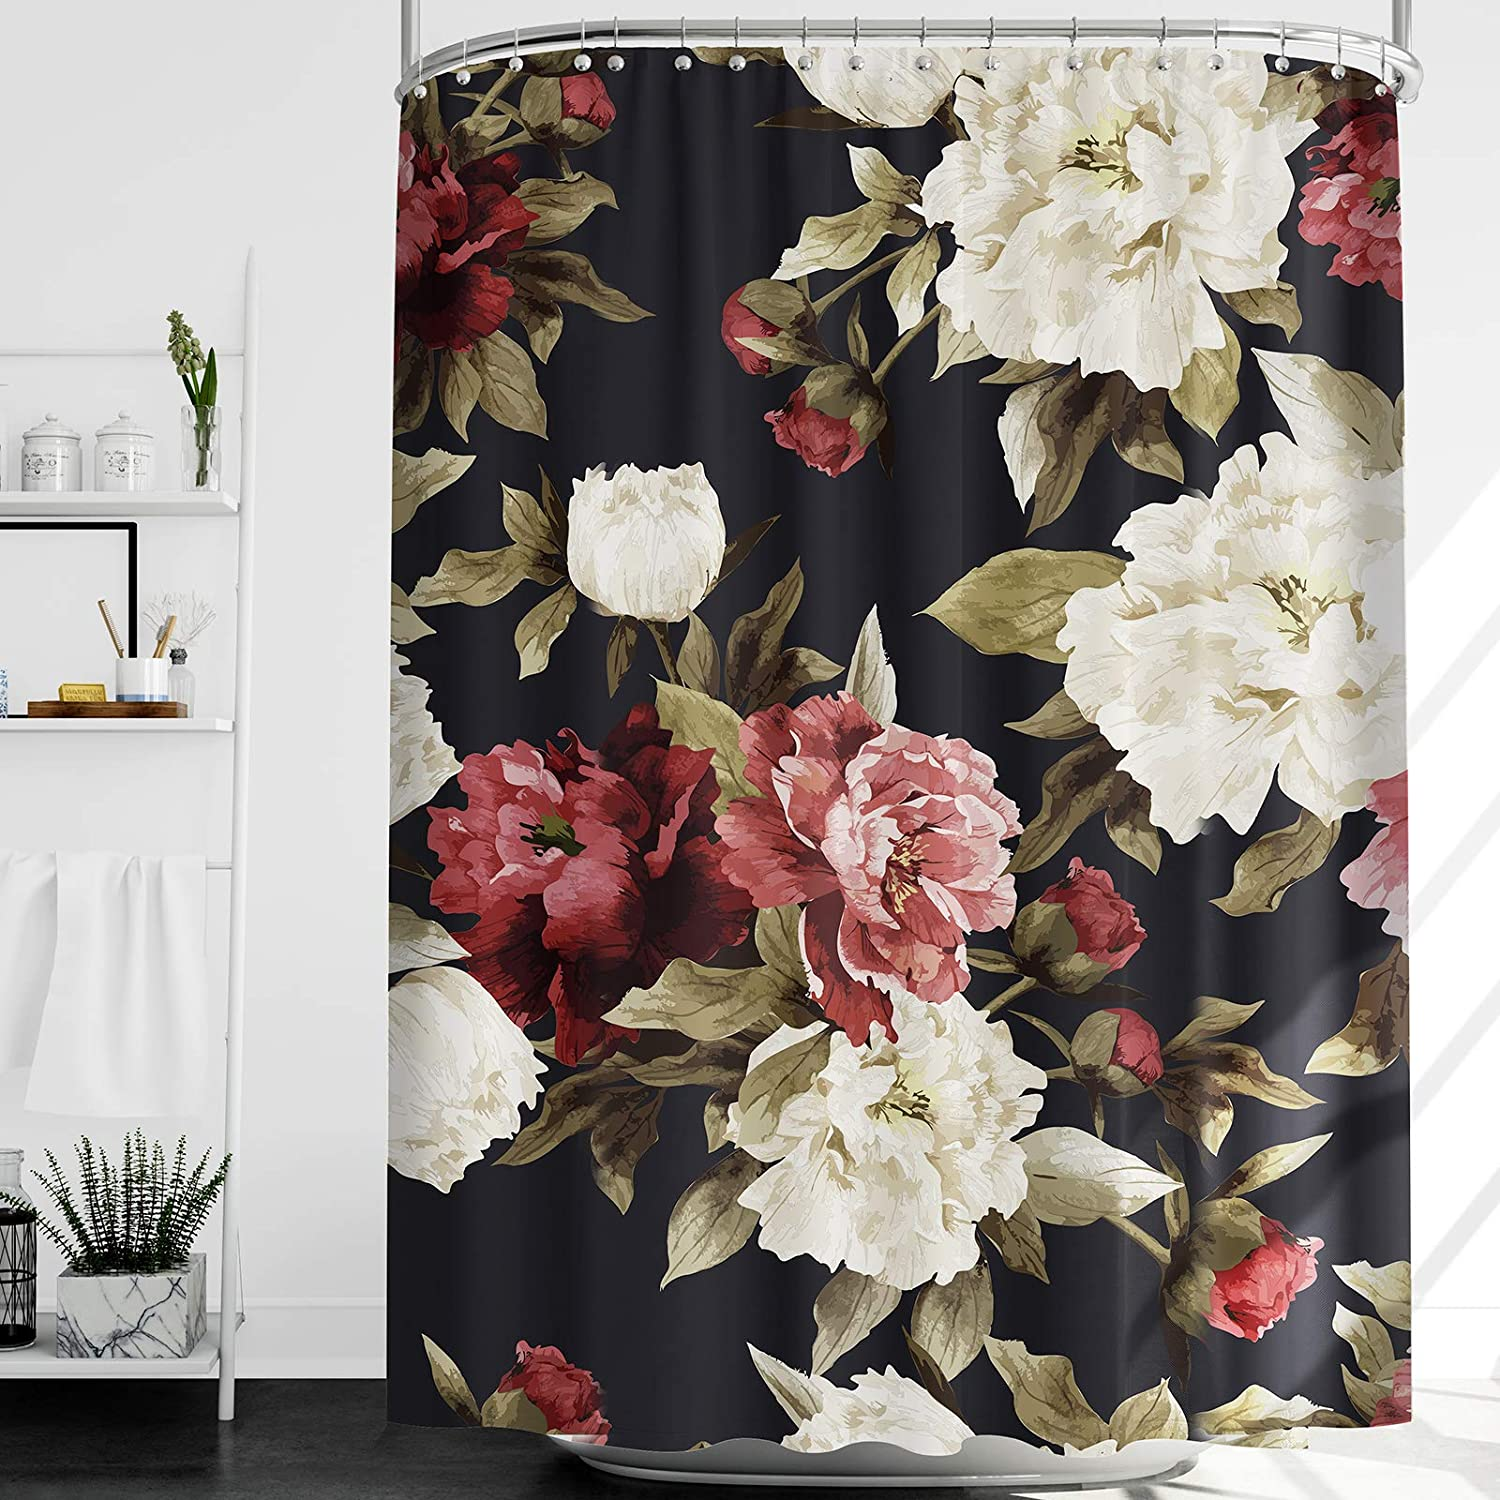 Riyidecor Watercolor Floral Shower Curtain Thicken Heavy Duty 12 Pack Metal Hooks Rustic Flowers Rose Girl Retro Leaves Blossom Peony Woman Weighted Hem Waterproof Fabric Bathroom Home 72x72 Inch